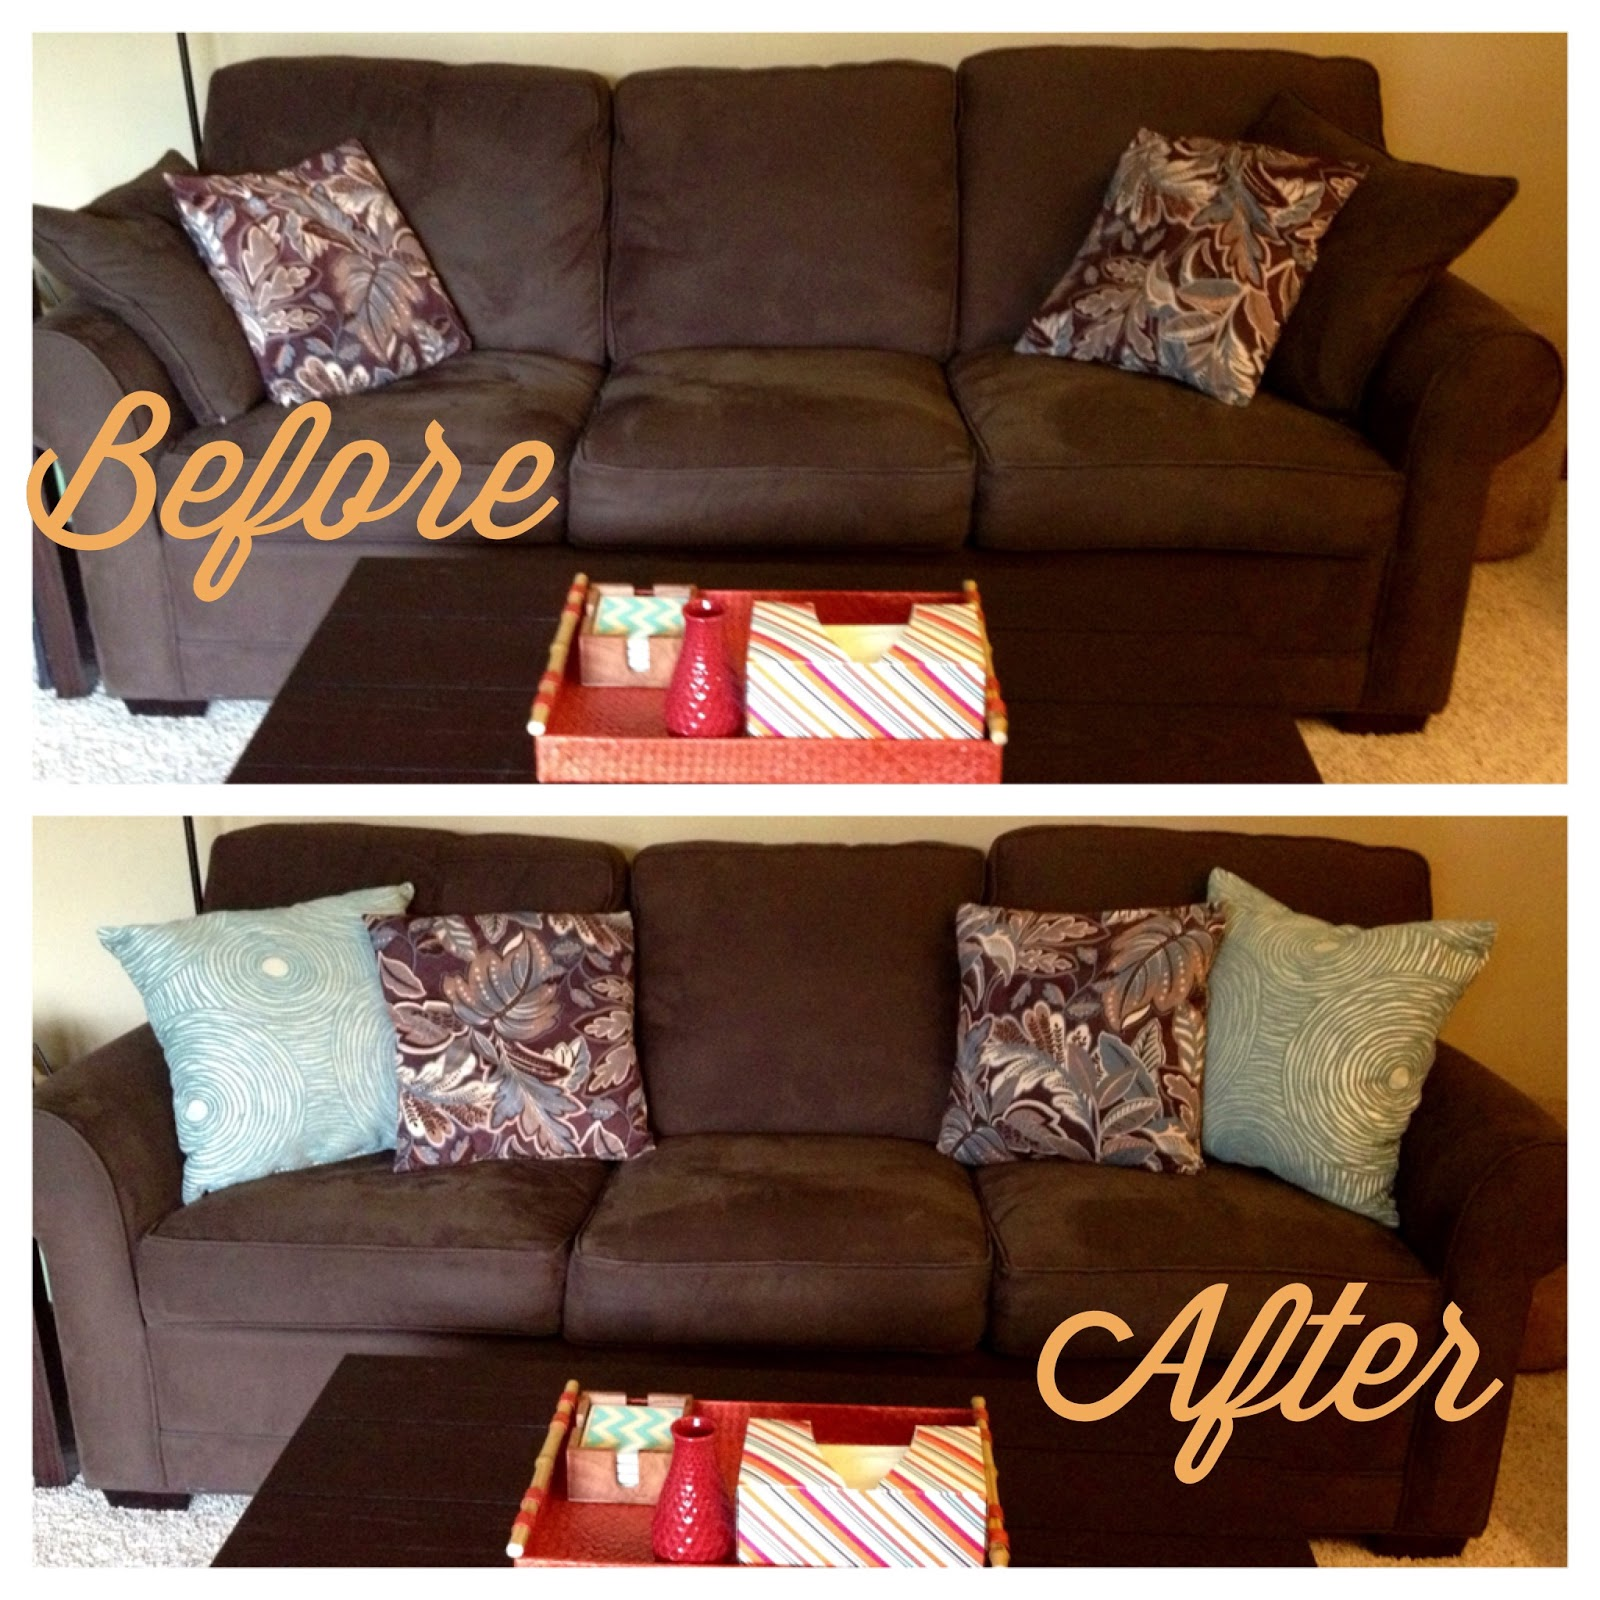 Superior Throw Pillows For A Brown Couch My Own Twist On Things Little Changes